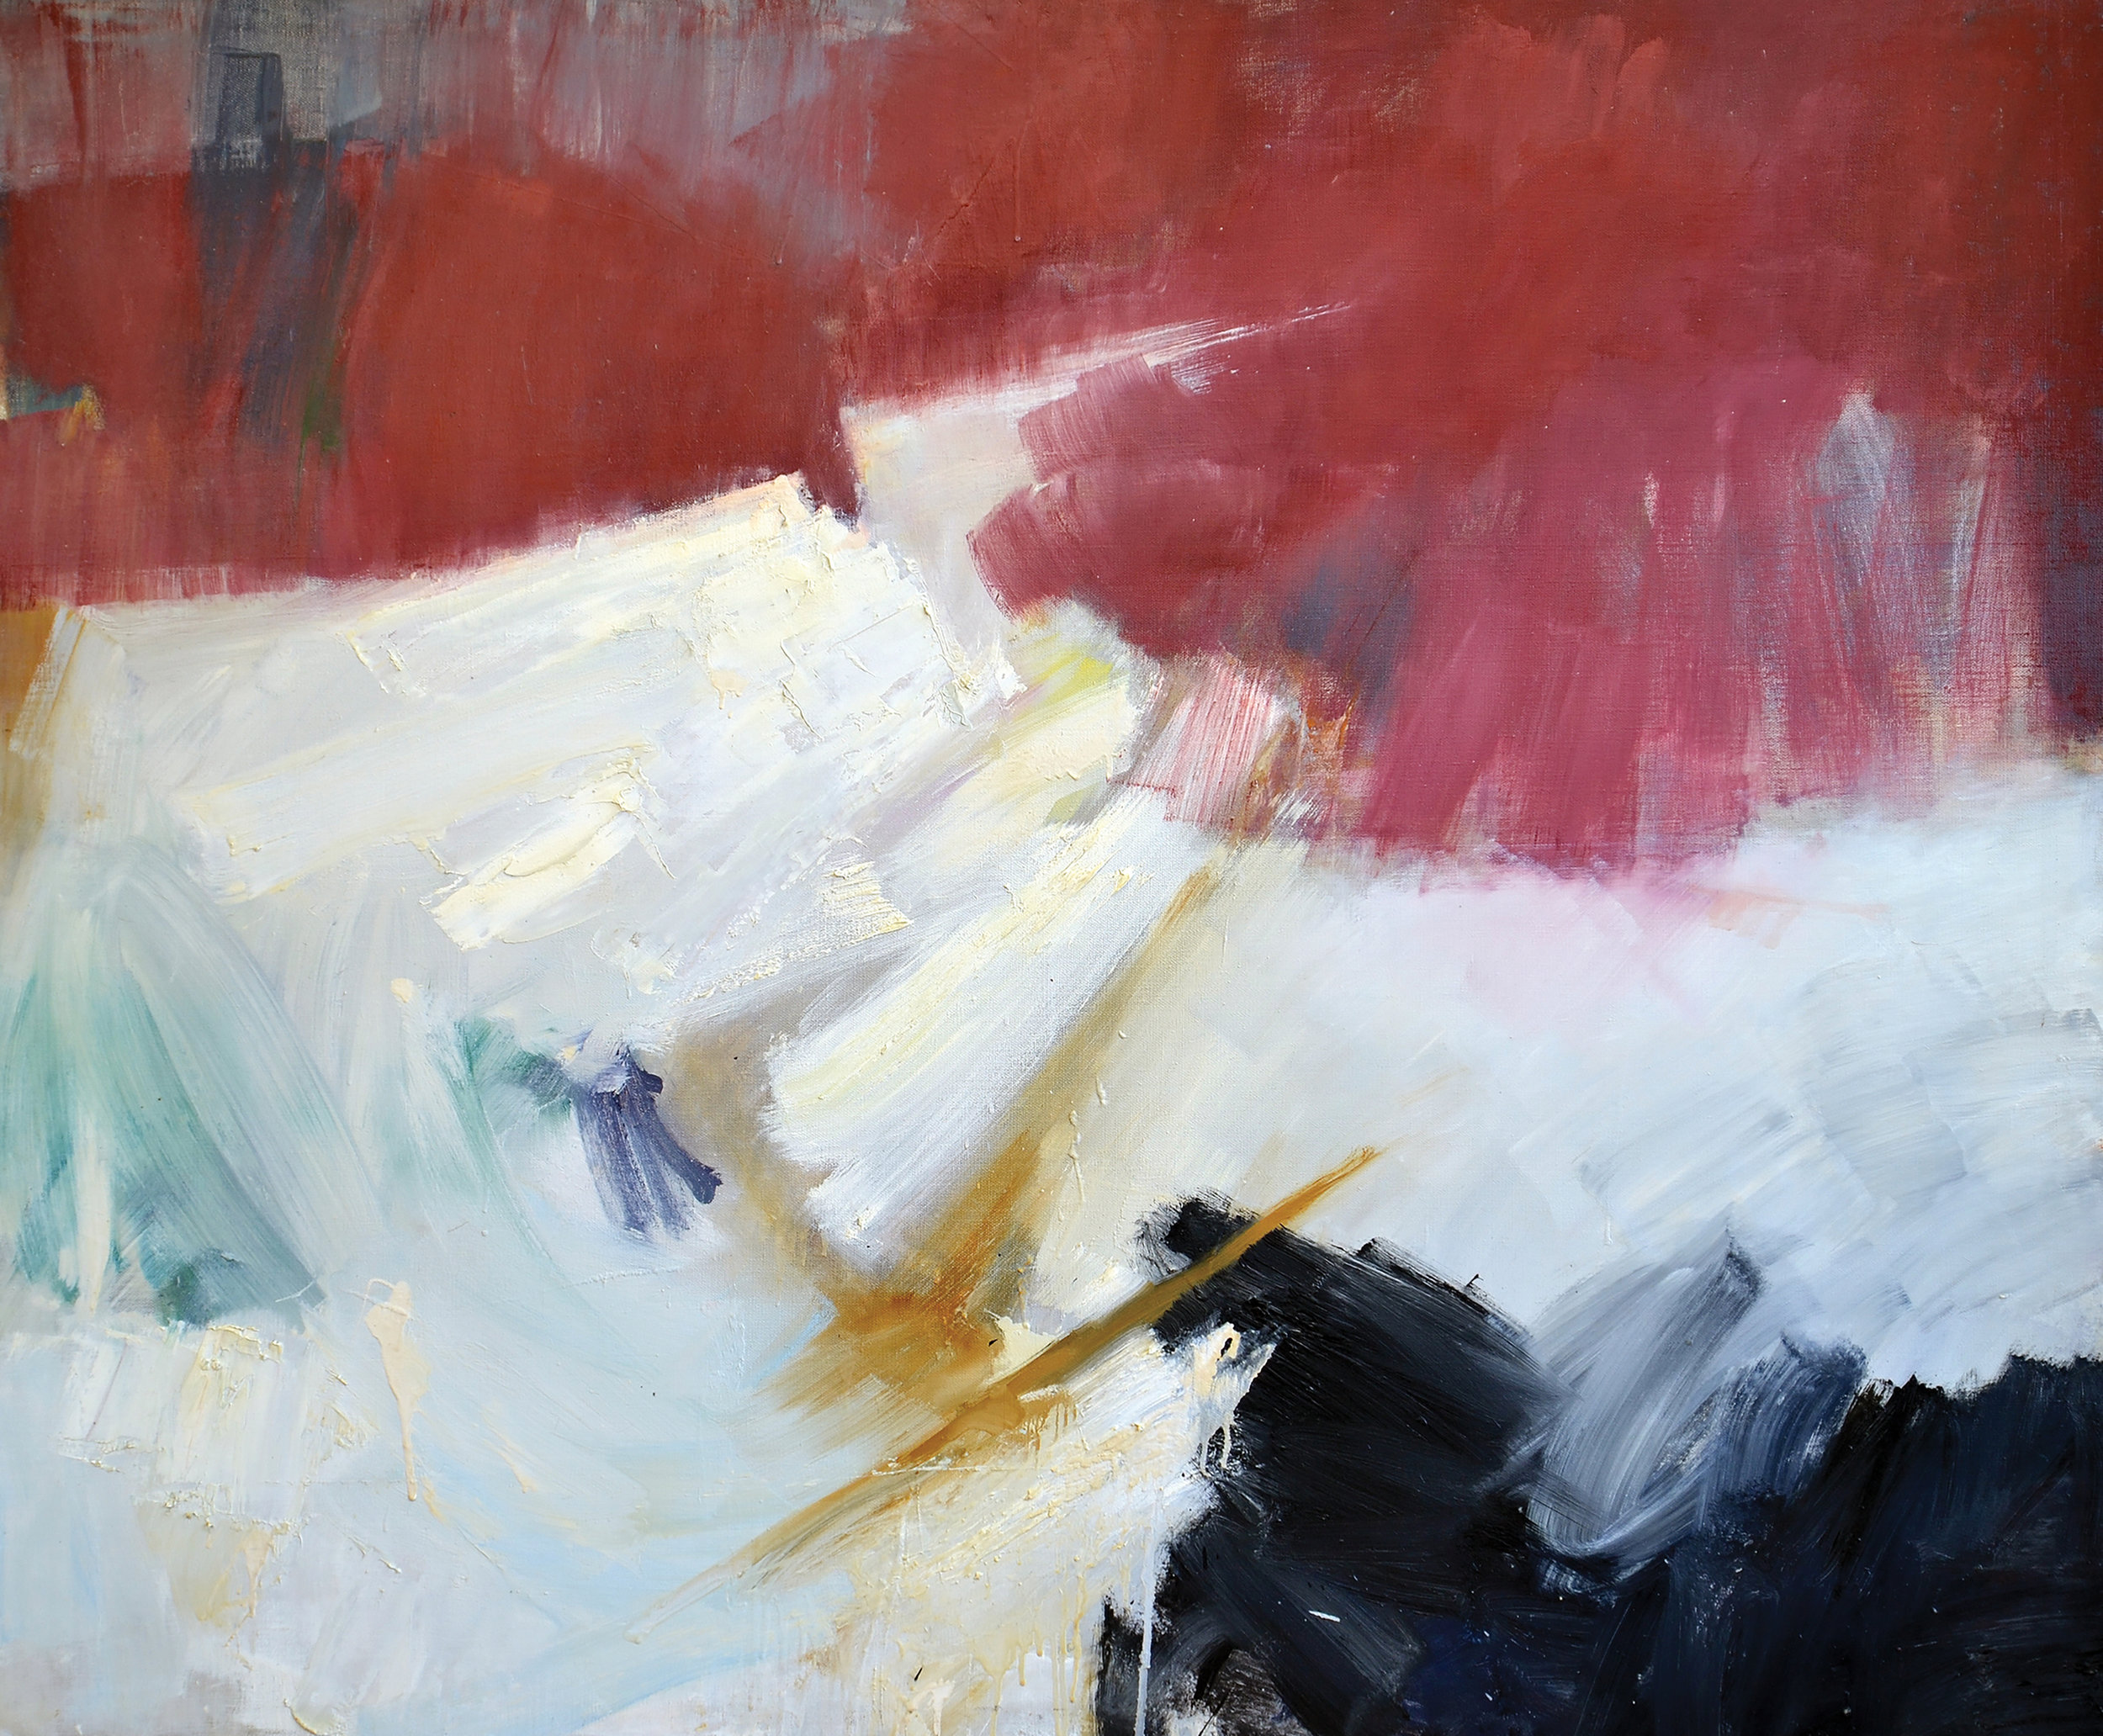 Stowe, 1960  , oil on canvas, 50 x 60 inches